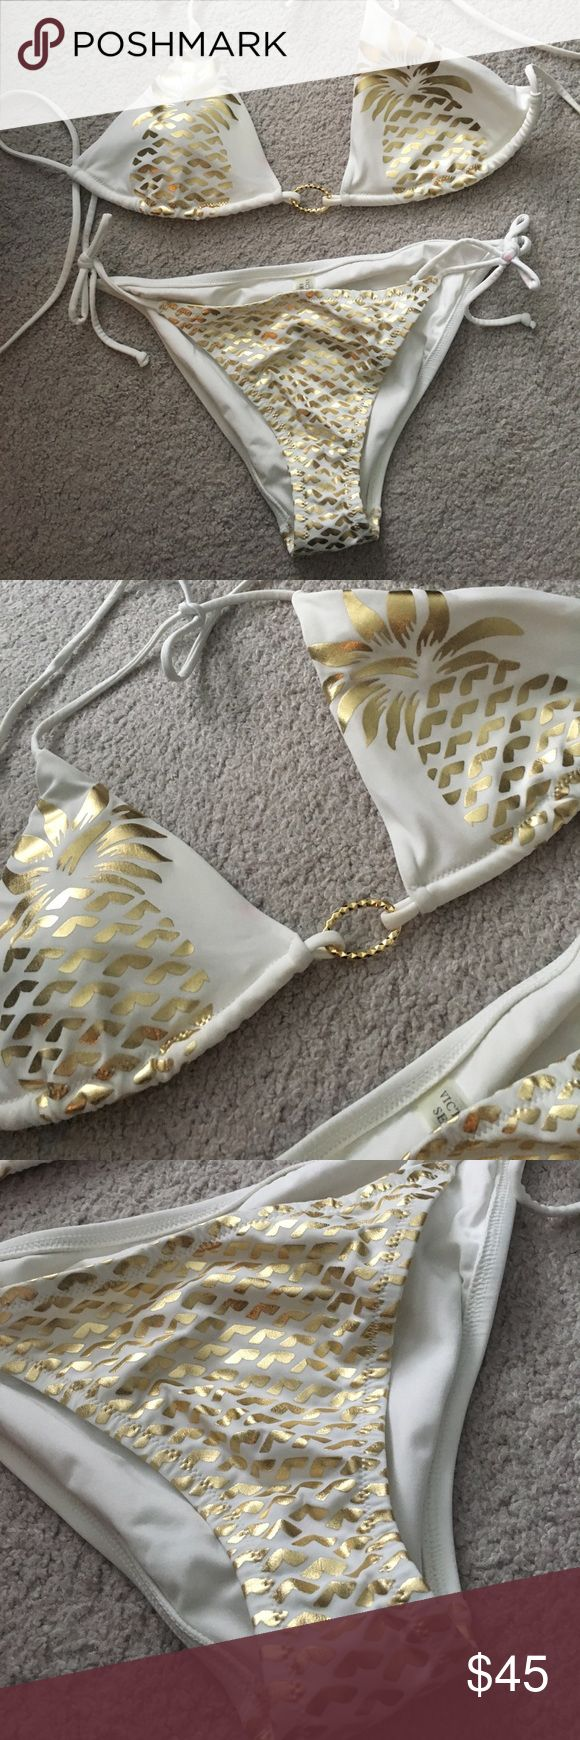 Victoria's Secret Bathing Suit White and gold bikini.  Pineapple design on top! Triangle tie style top and tie bottom. Victoria's Secret Swim Bikinis